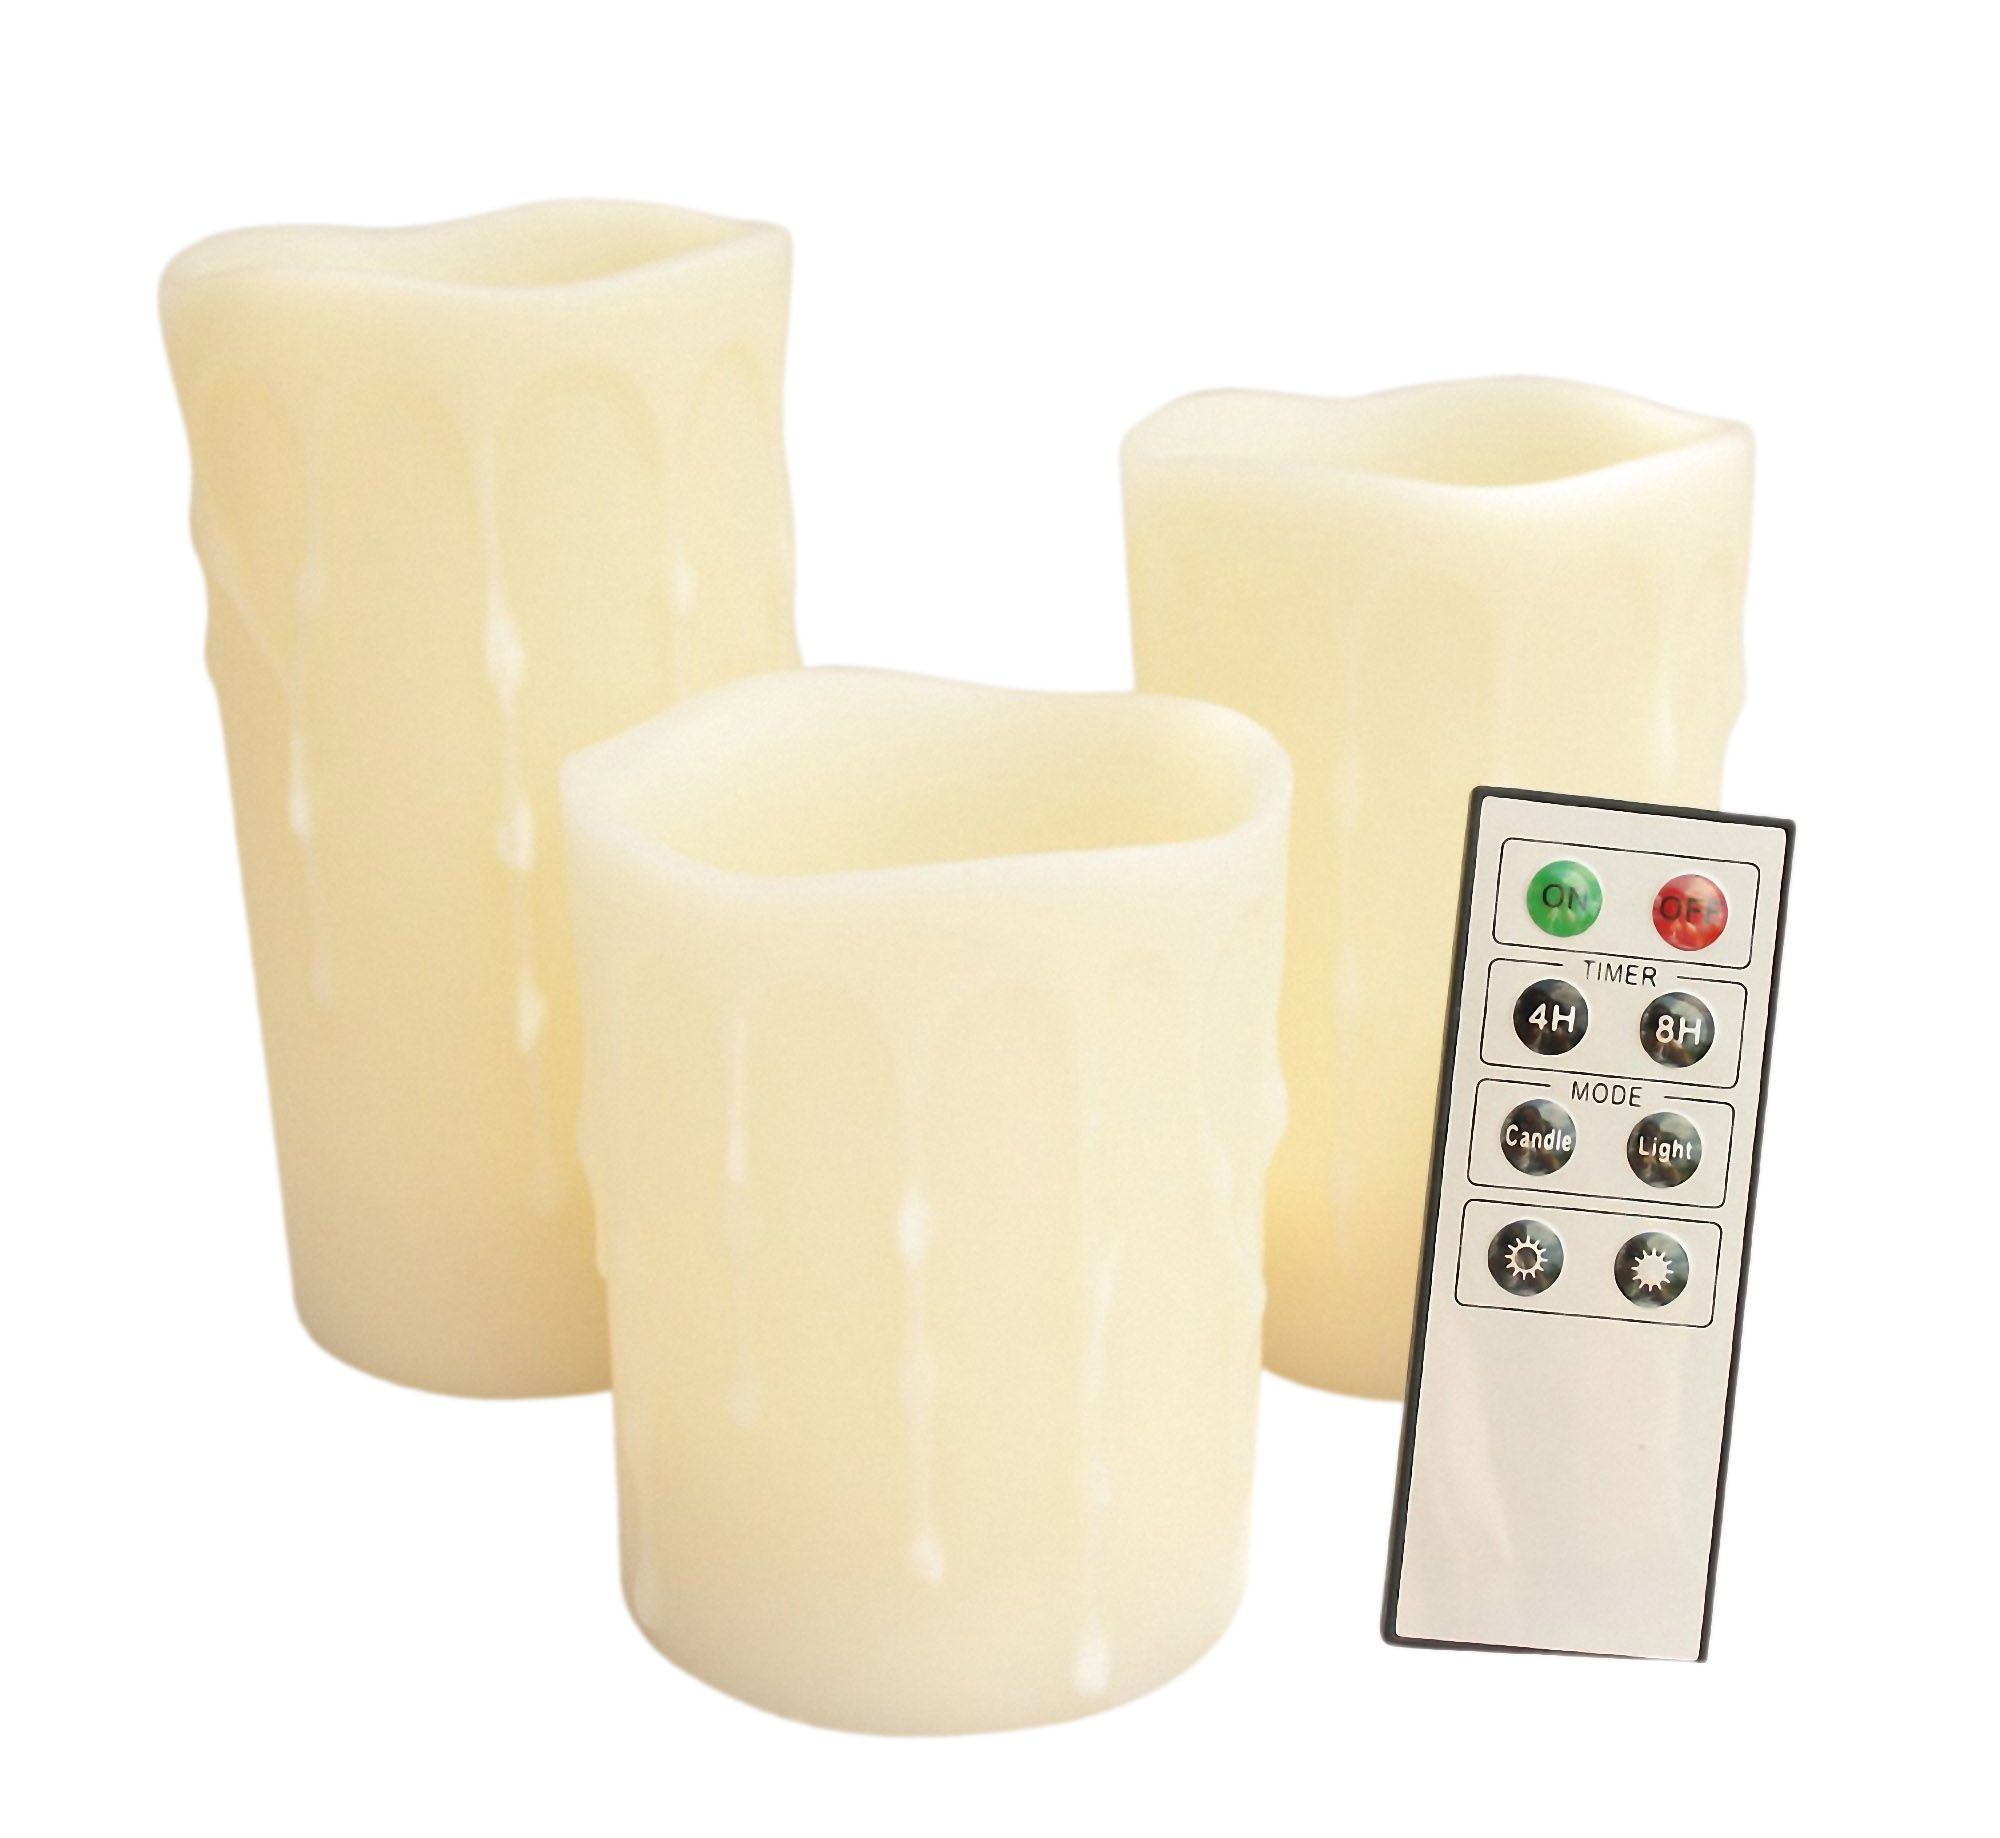 "Set of 3 Remote Control Wax Pillar LED Candles with Melted Edge Wax Drip Effect - 4"",5"" and 6"" tall"